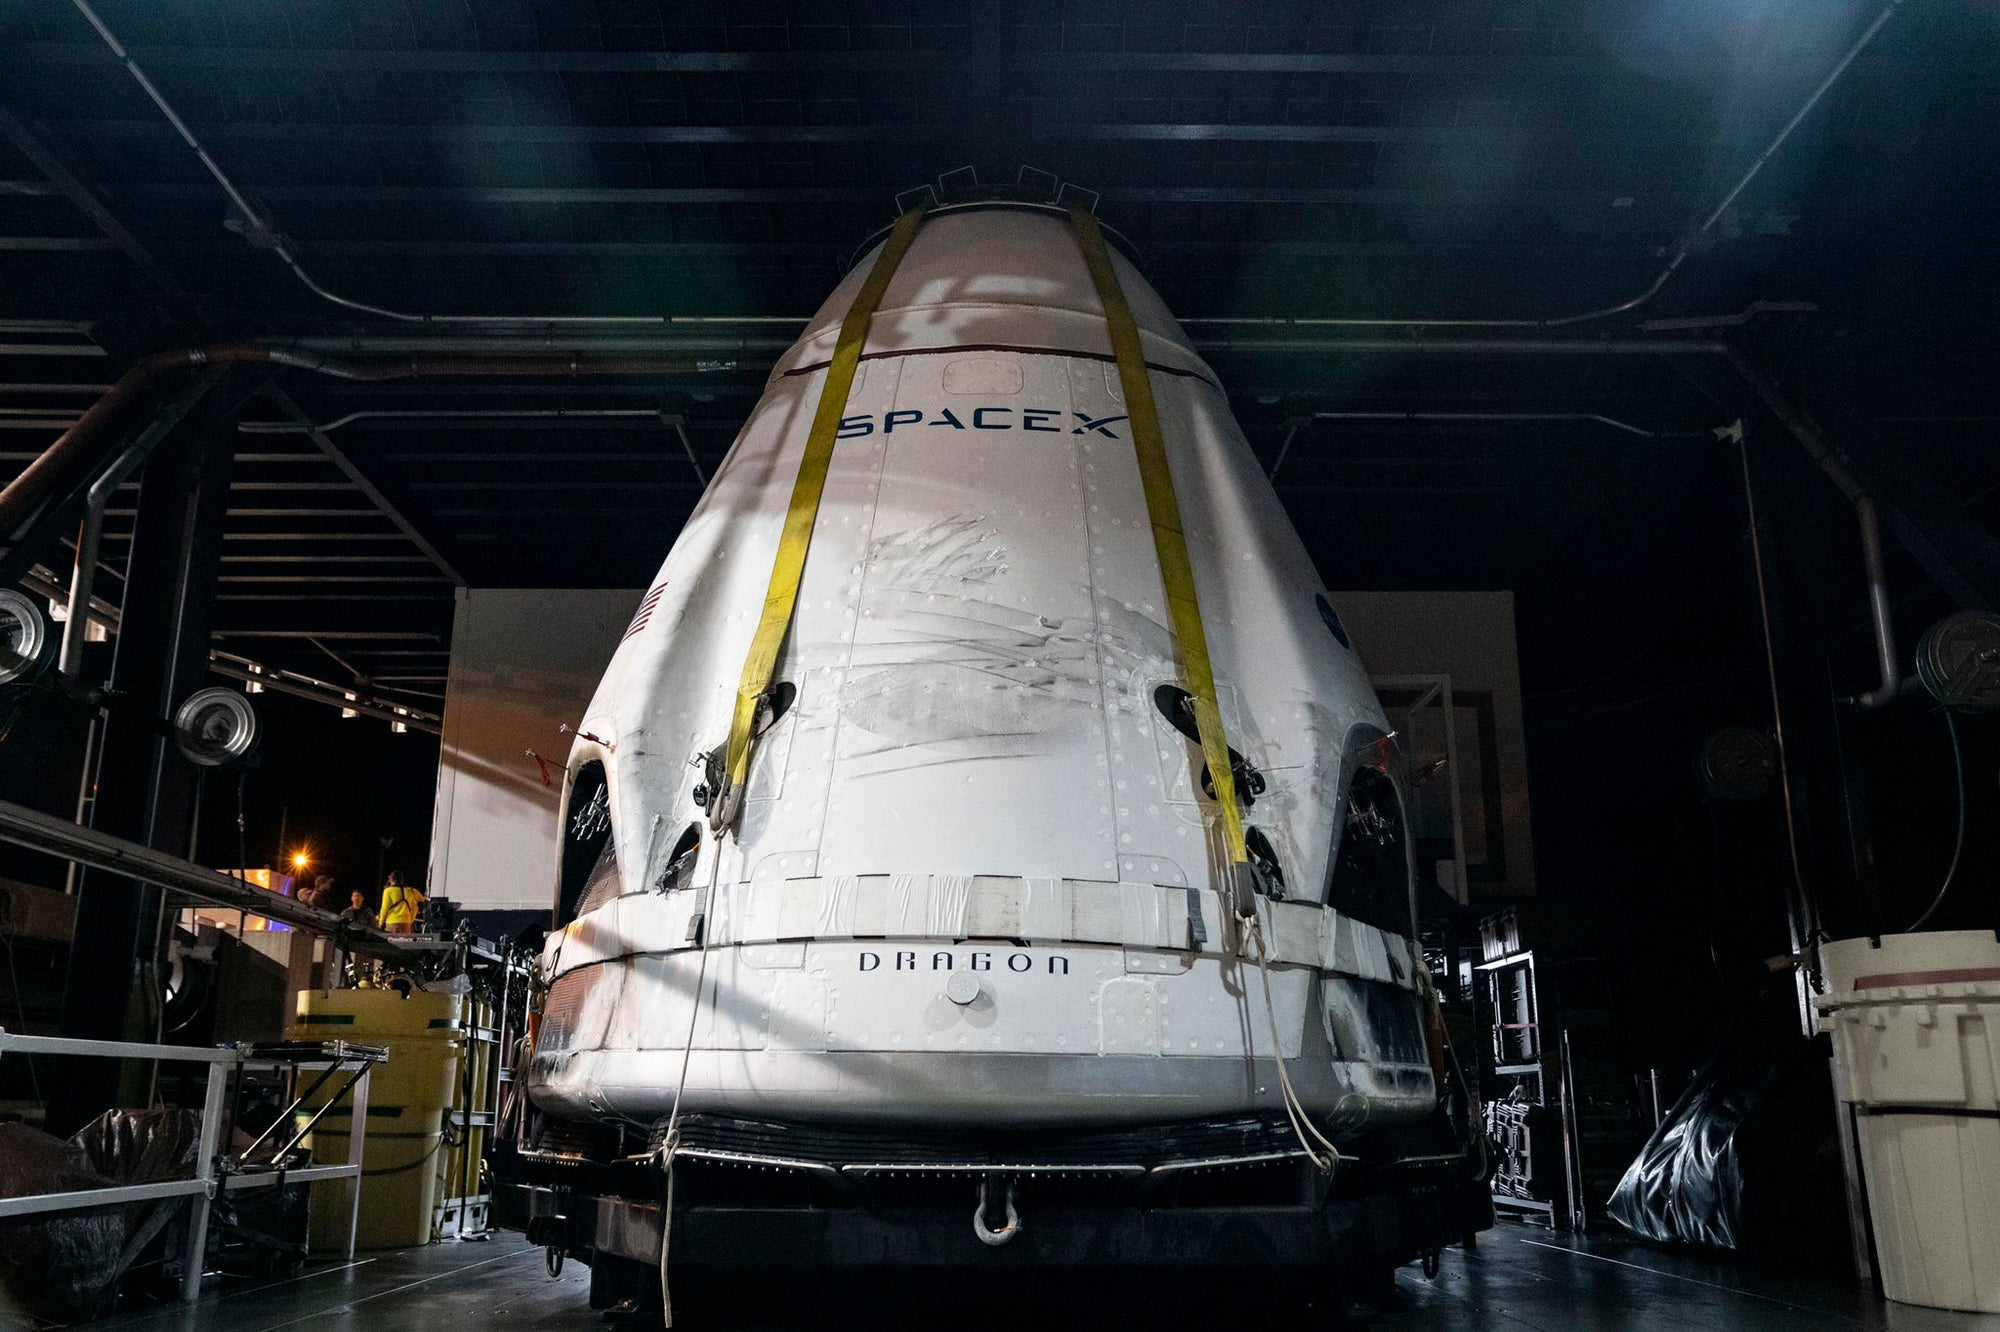 SpaceX worked in coordination with U.S Air Force to recover the Crew Dragon spacecraft after successful In-Flight Abort mission